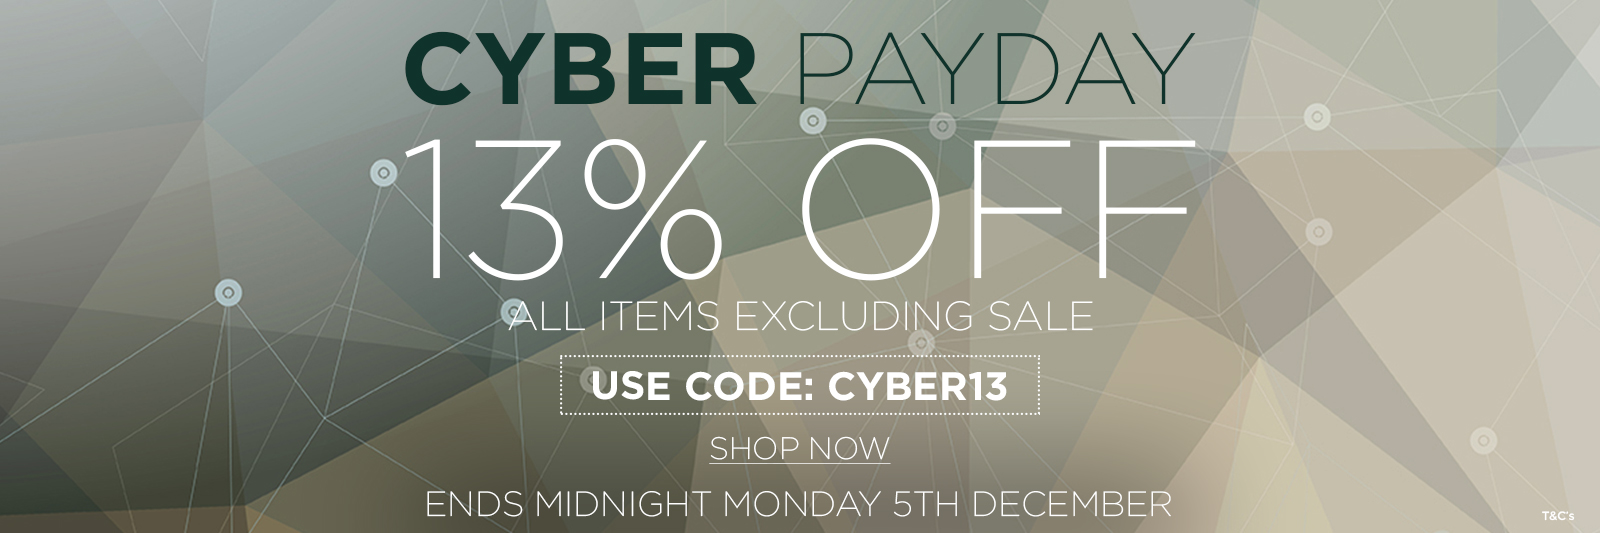 Cyber Payday